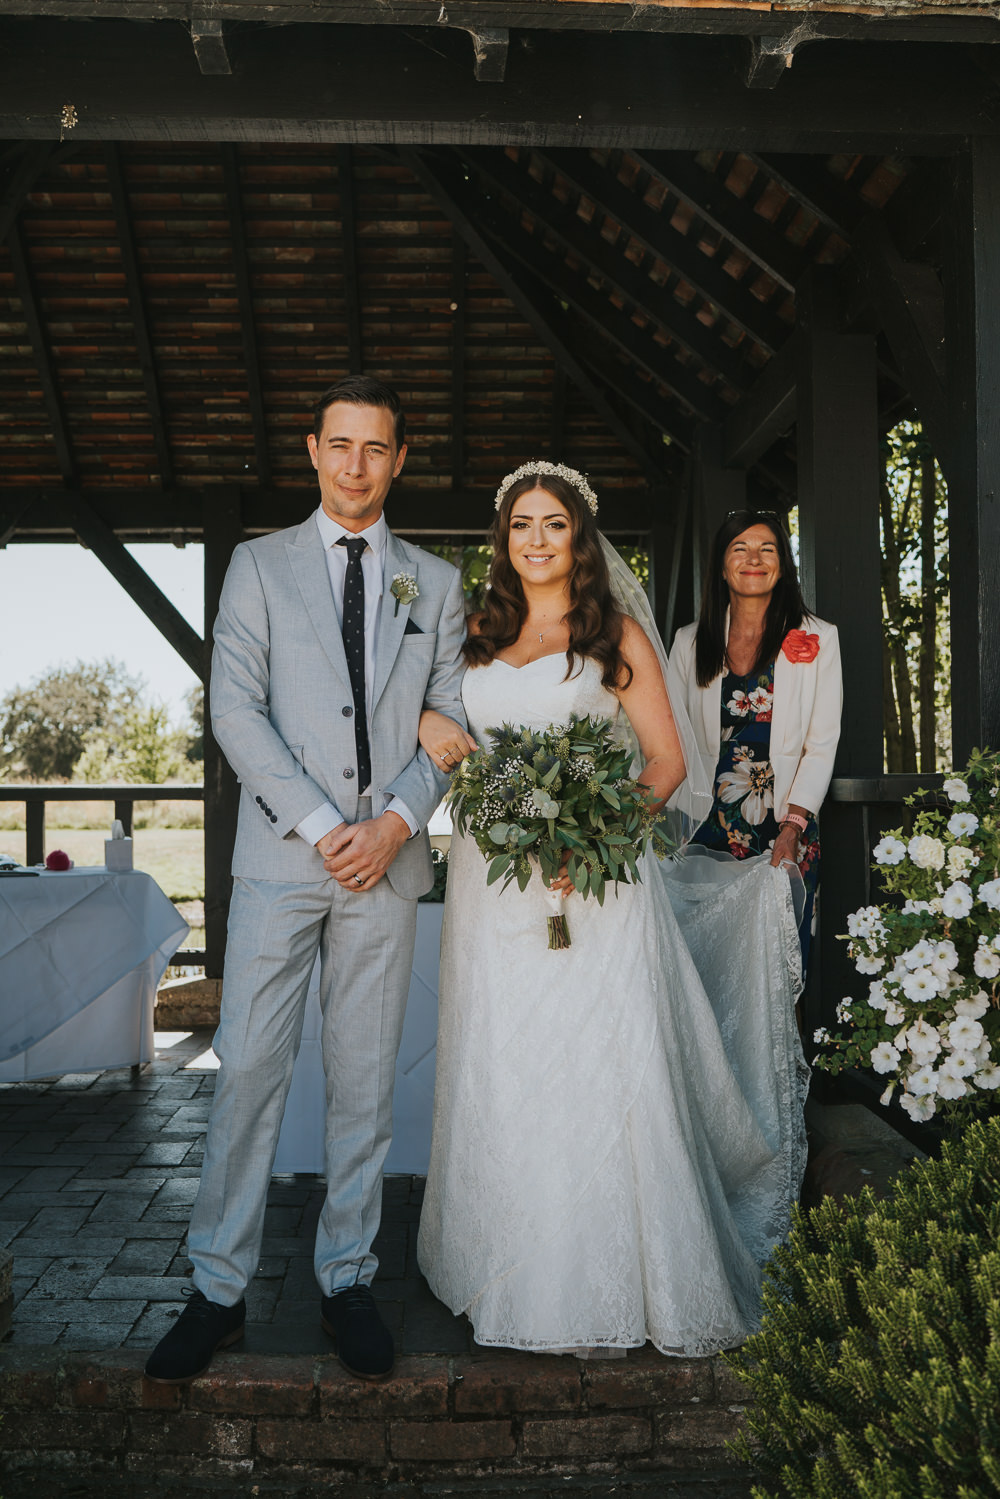 Intimate Outdoor Natural Relaxed Laid Back Summer Gazebo Ceremony Aisle Groom Bride Foliage Greenery Bouquet | Prested Hall Wedding Grace Elizabeth Photography